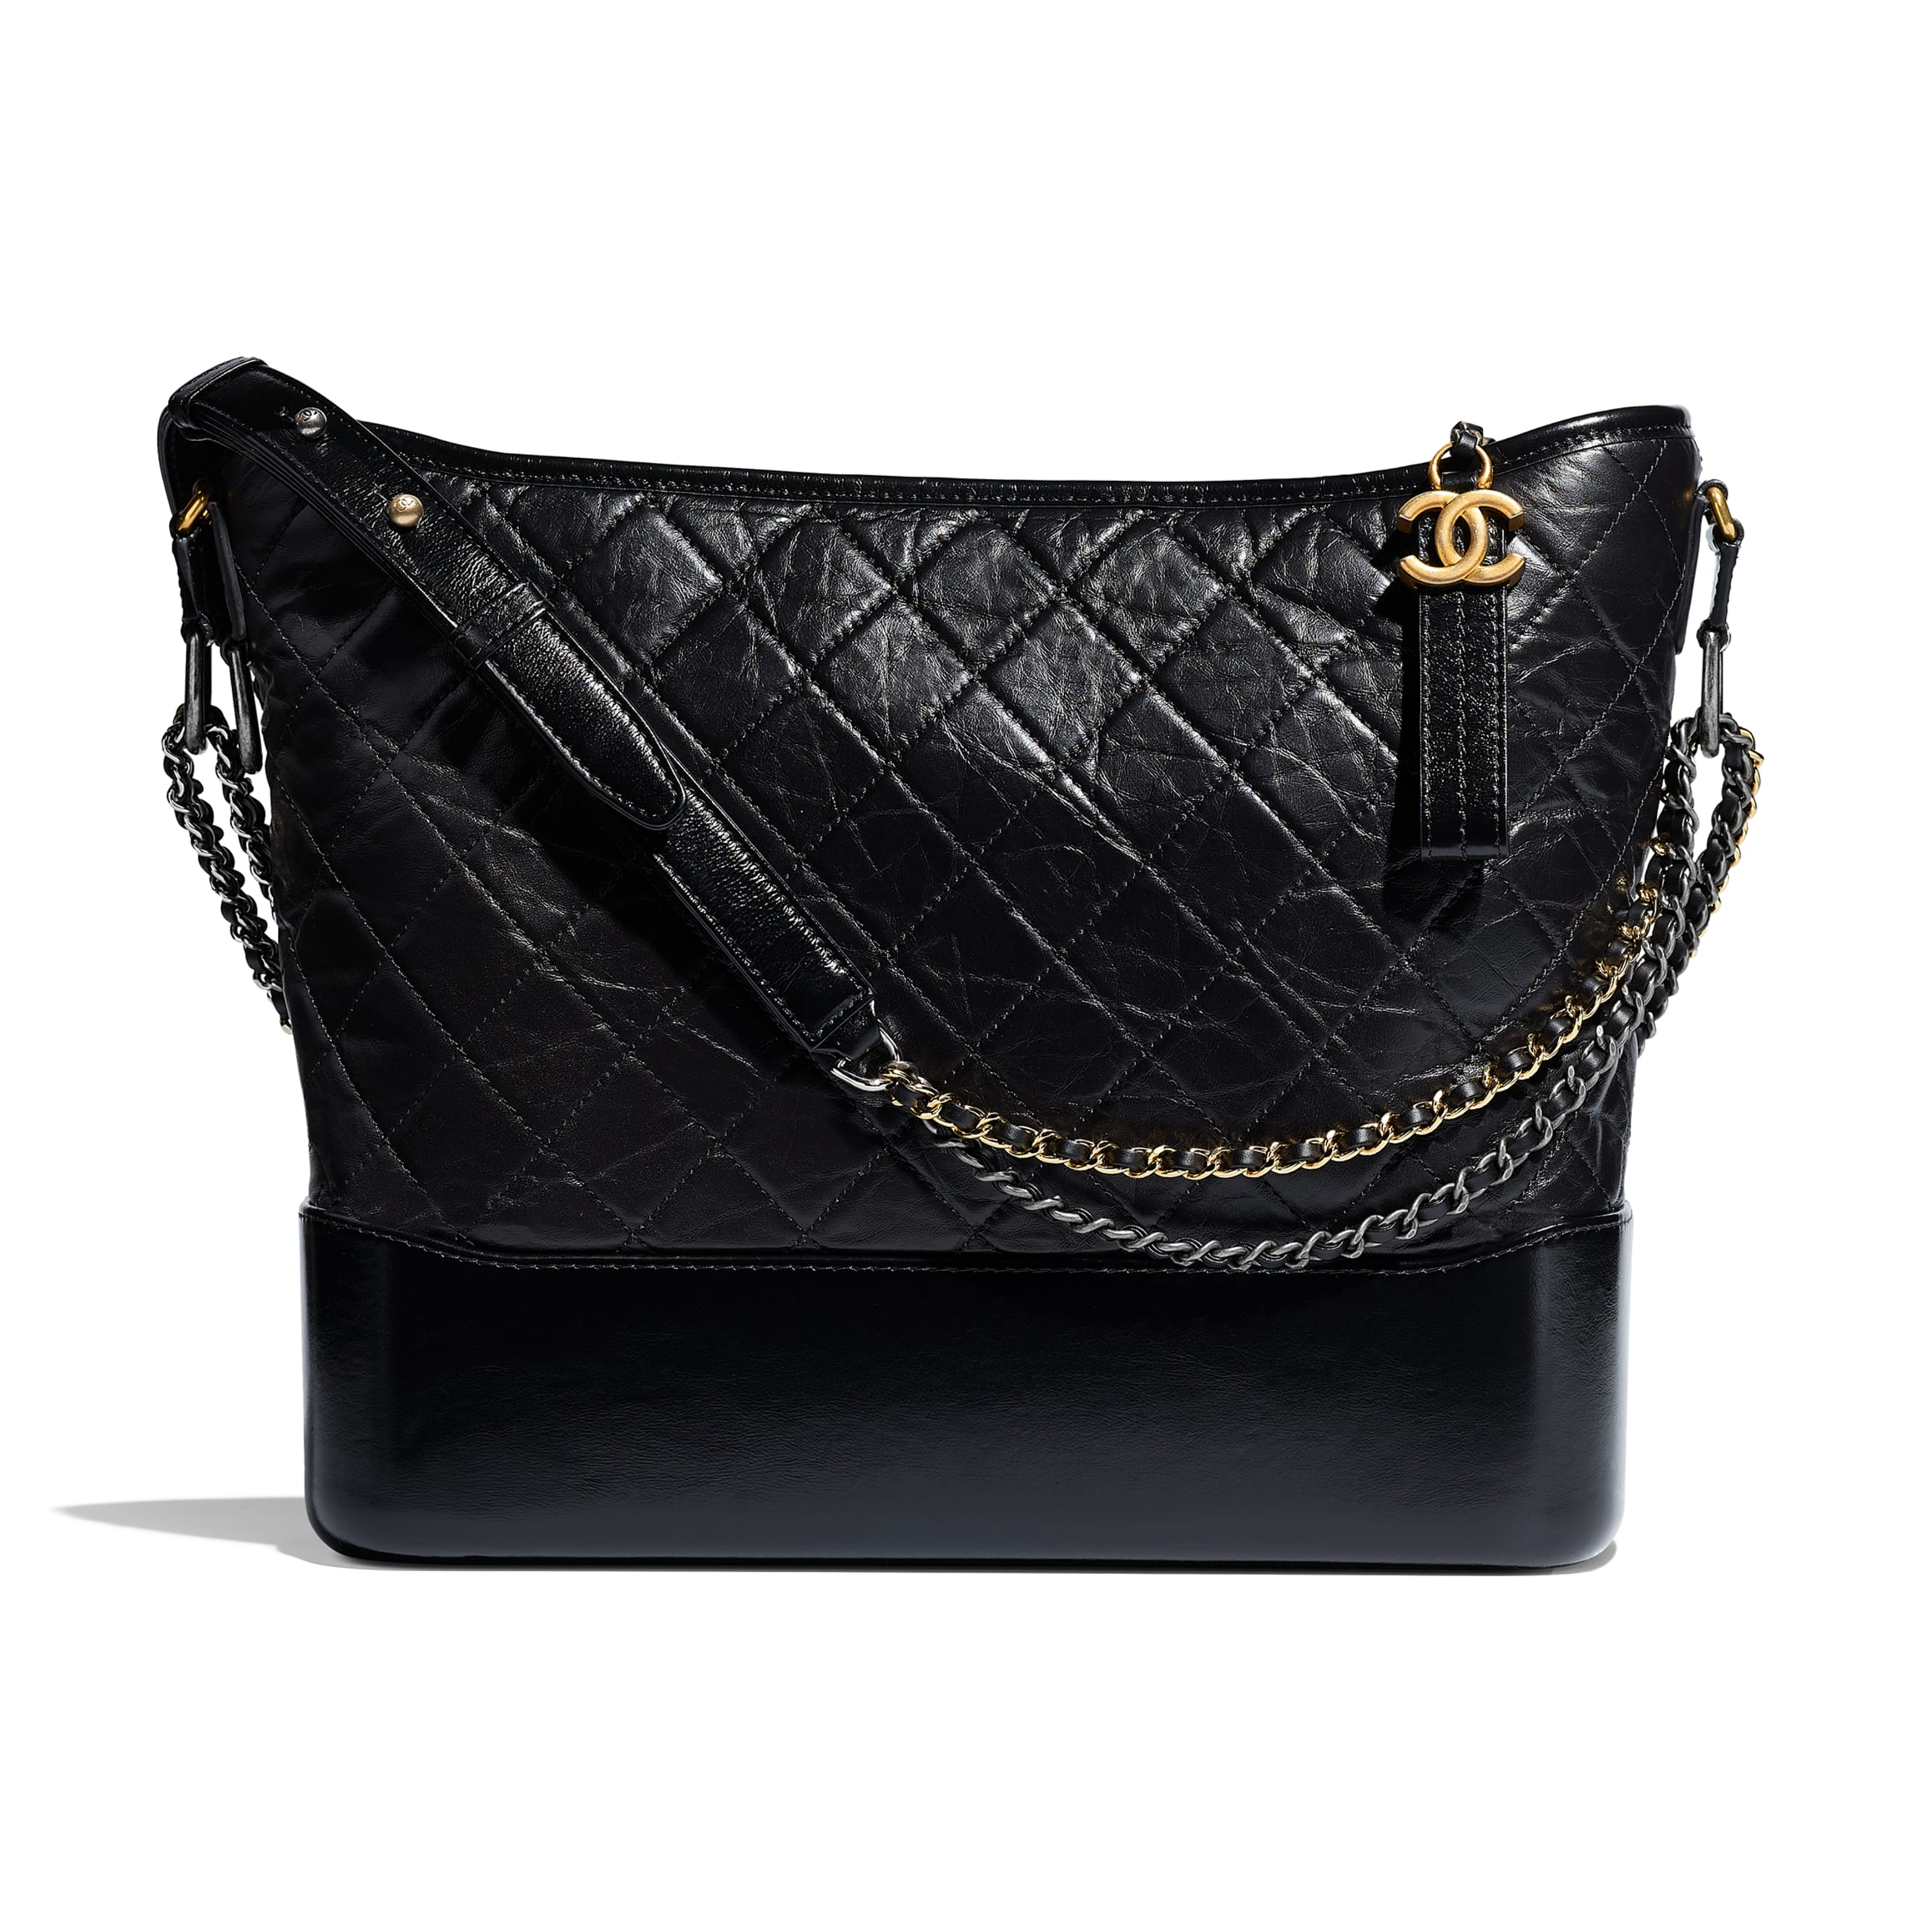 CHANEL'S GABRIELLE Large Hobo Bag - Black - Aged Calfskin, Smooth Calfskin, Silver-Tone & Gold-Tone Metal - Default view - see standard sized version